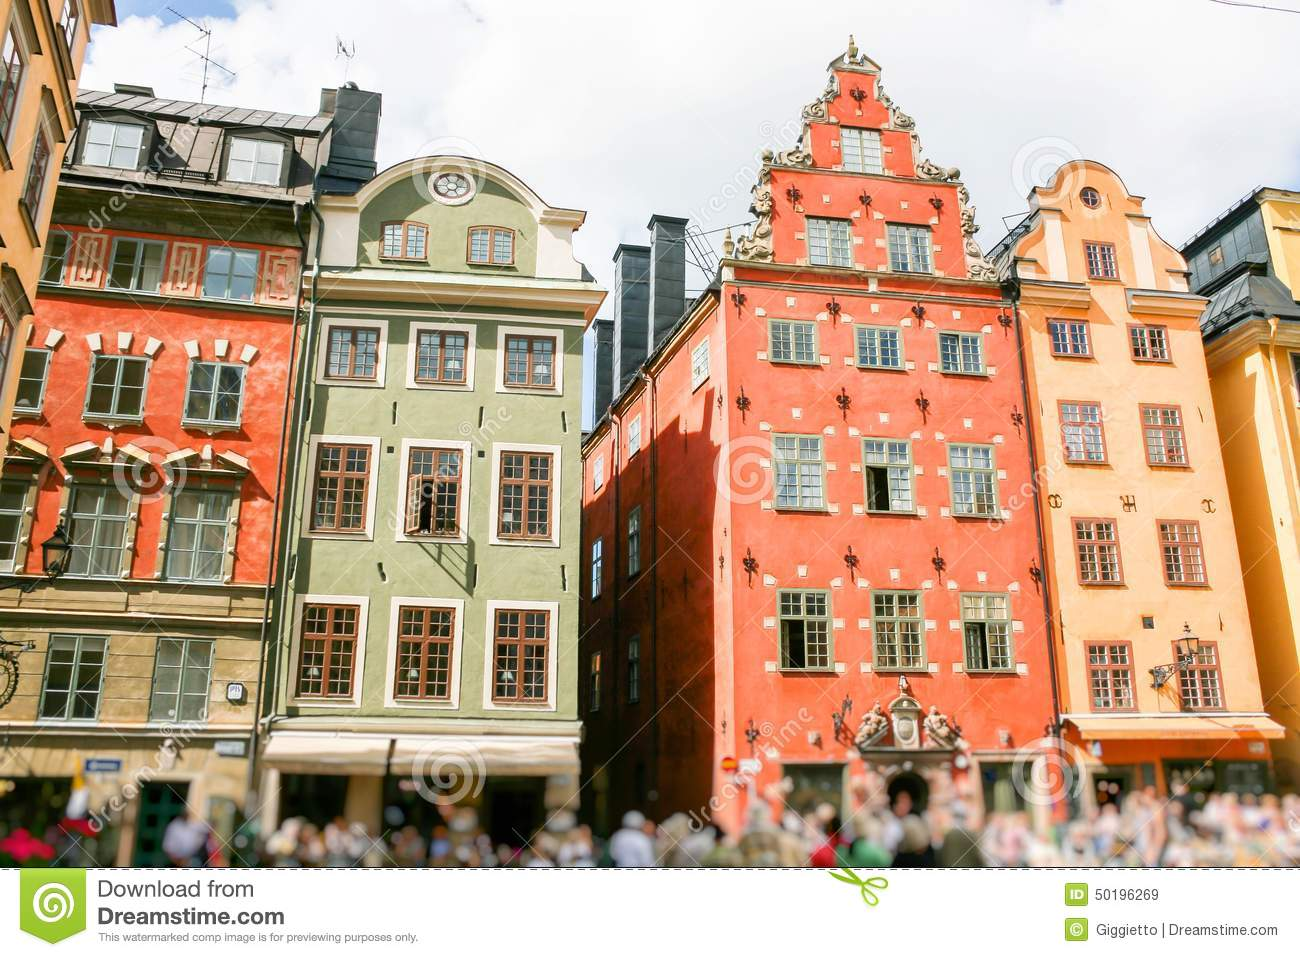 colored swedish homes stock photo - image: 50196269